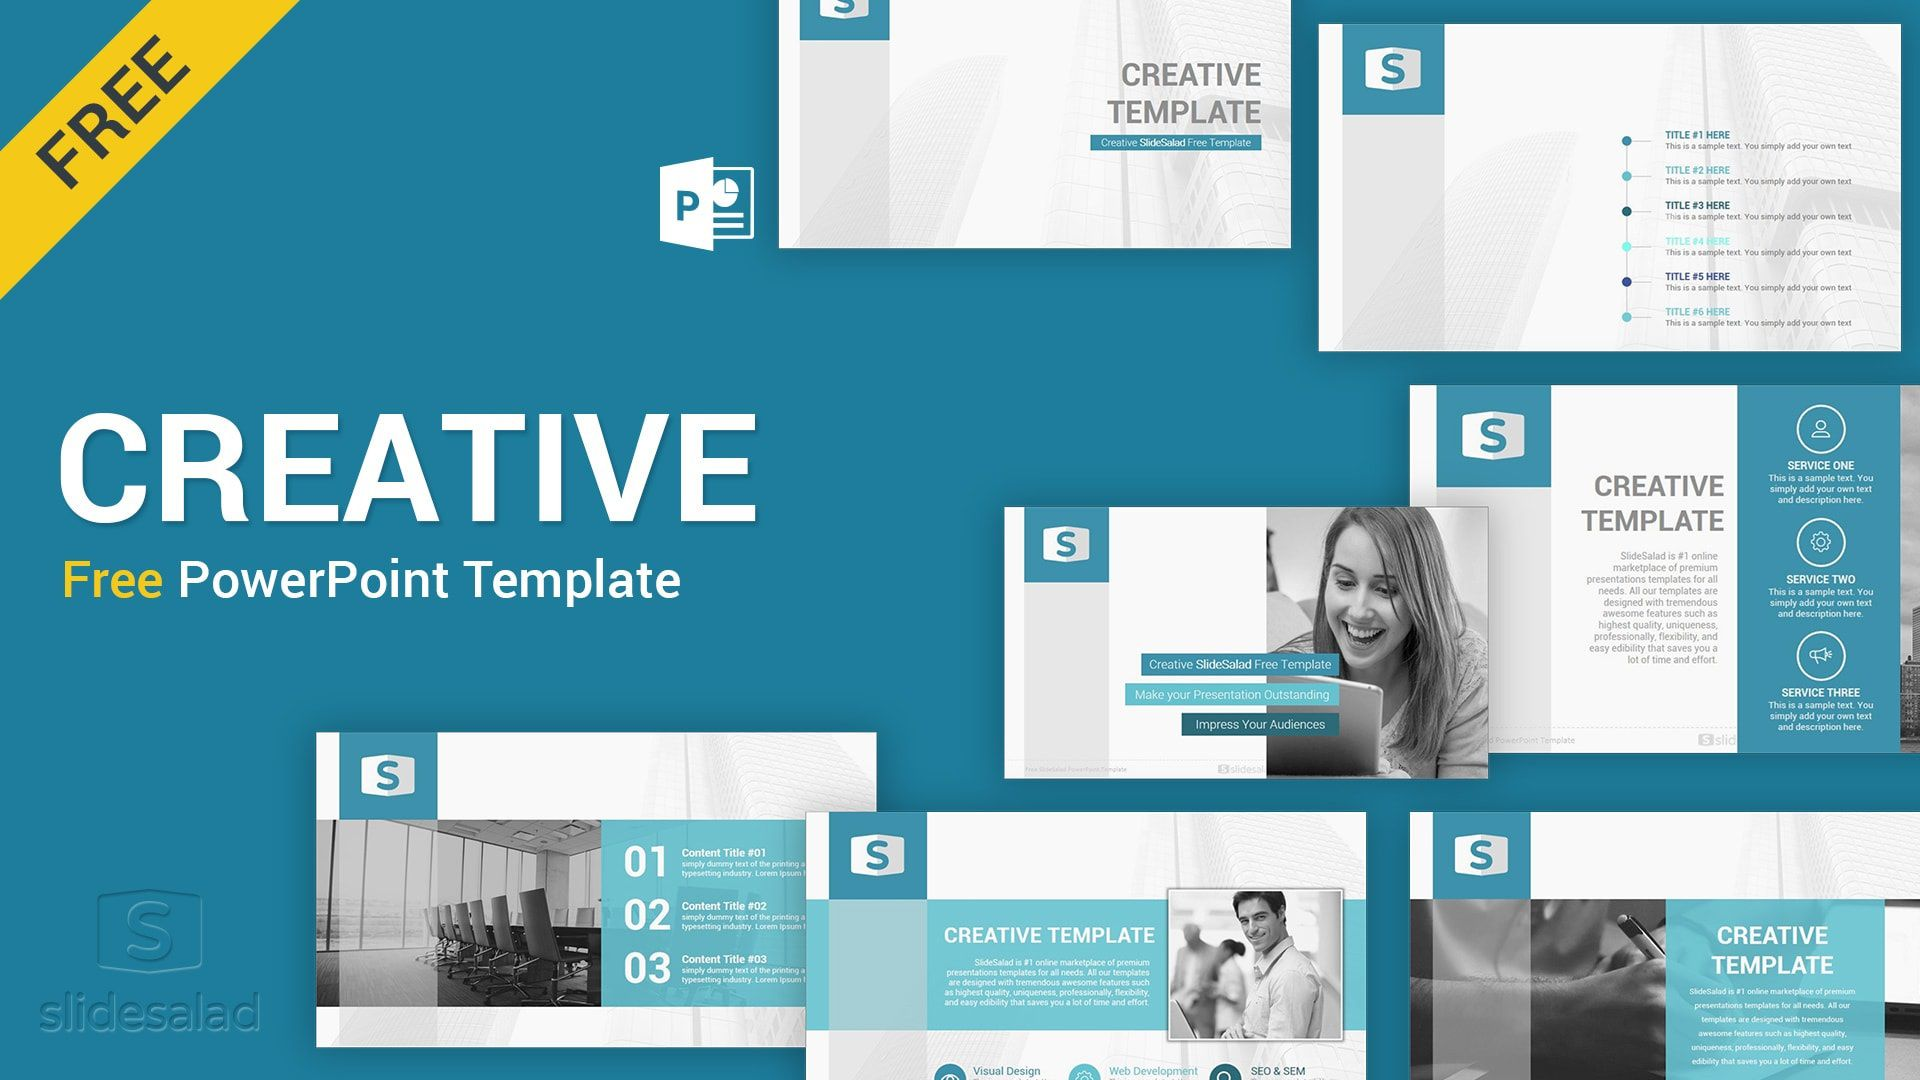 005 Beautiful Free Download Ppt Template For Technical Presentation Idea  Simple Project SampleFull